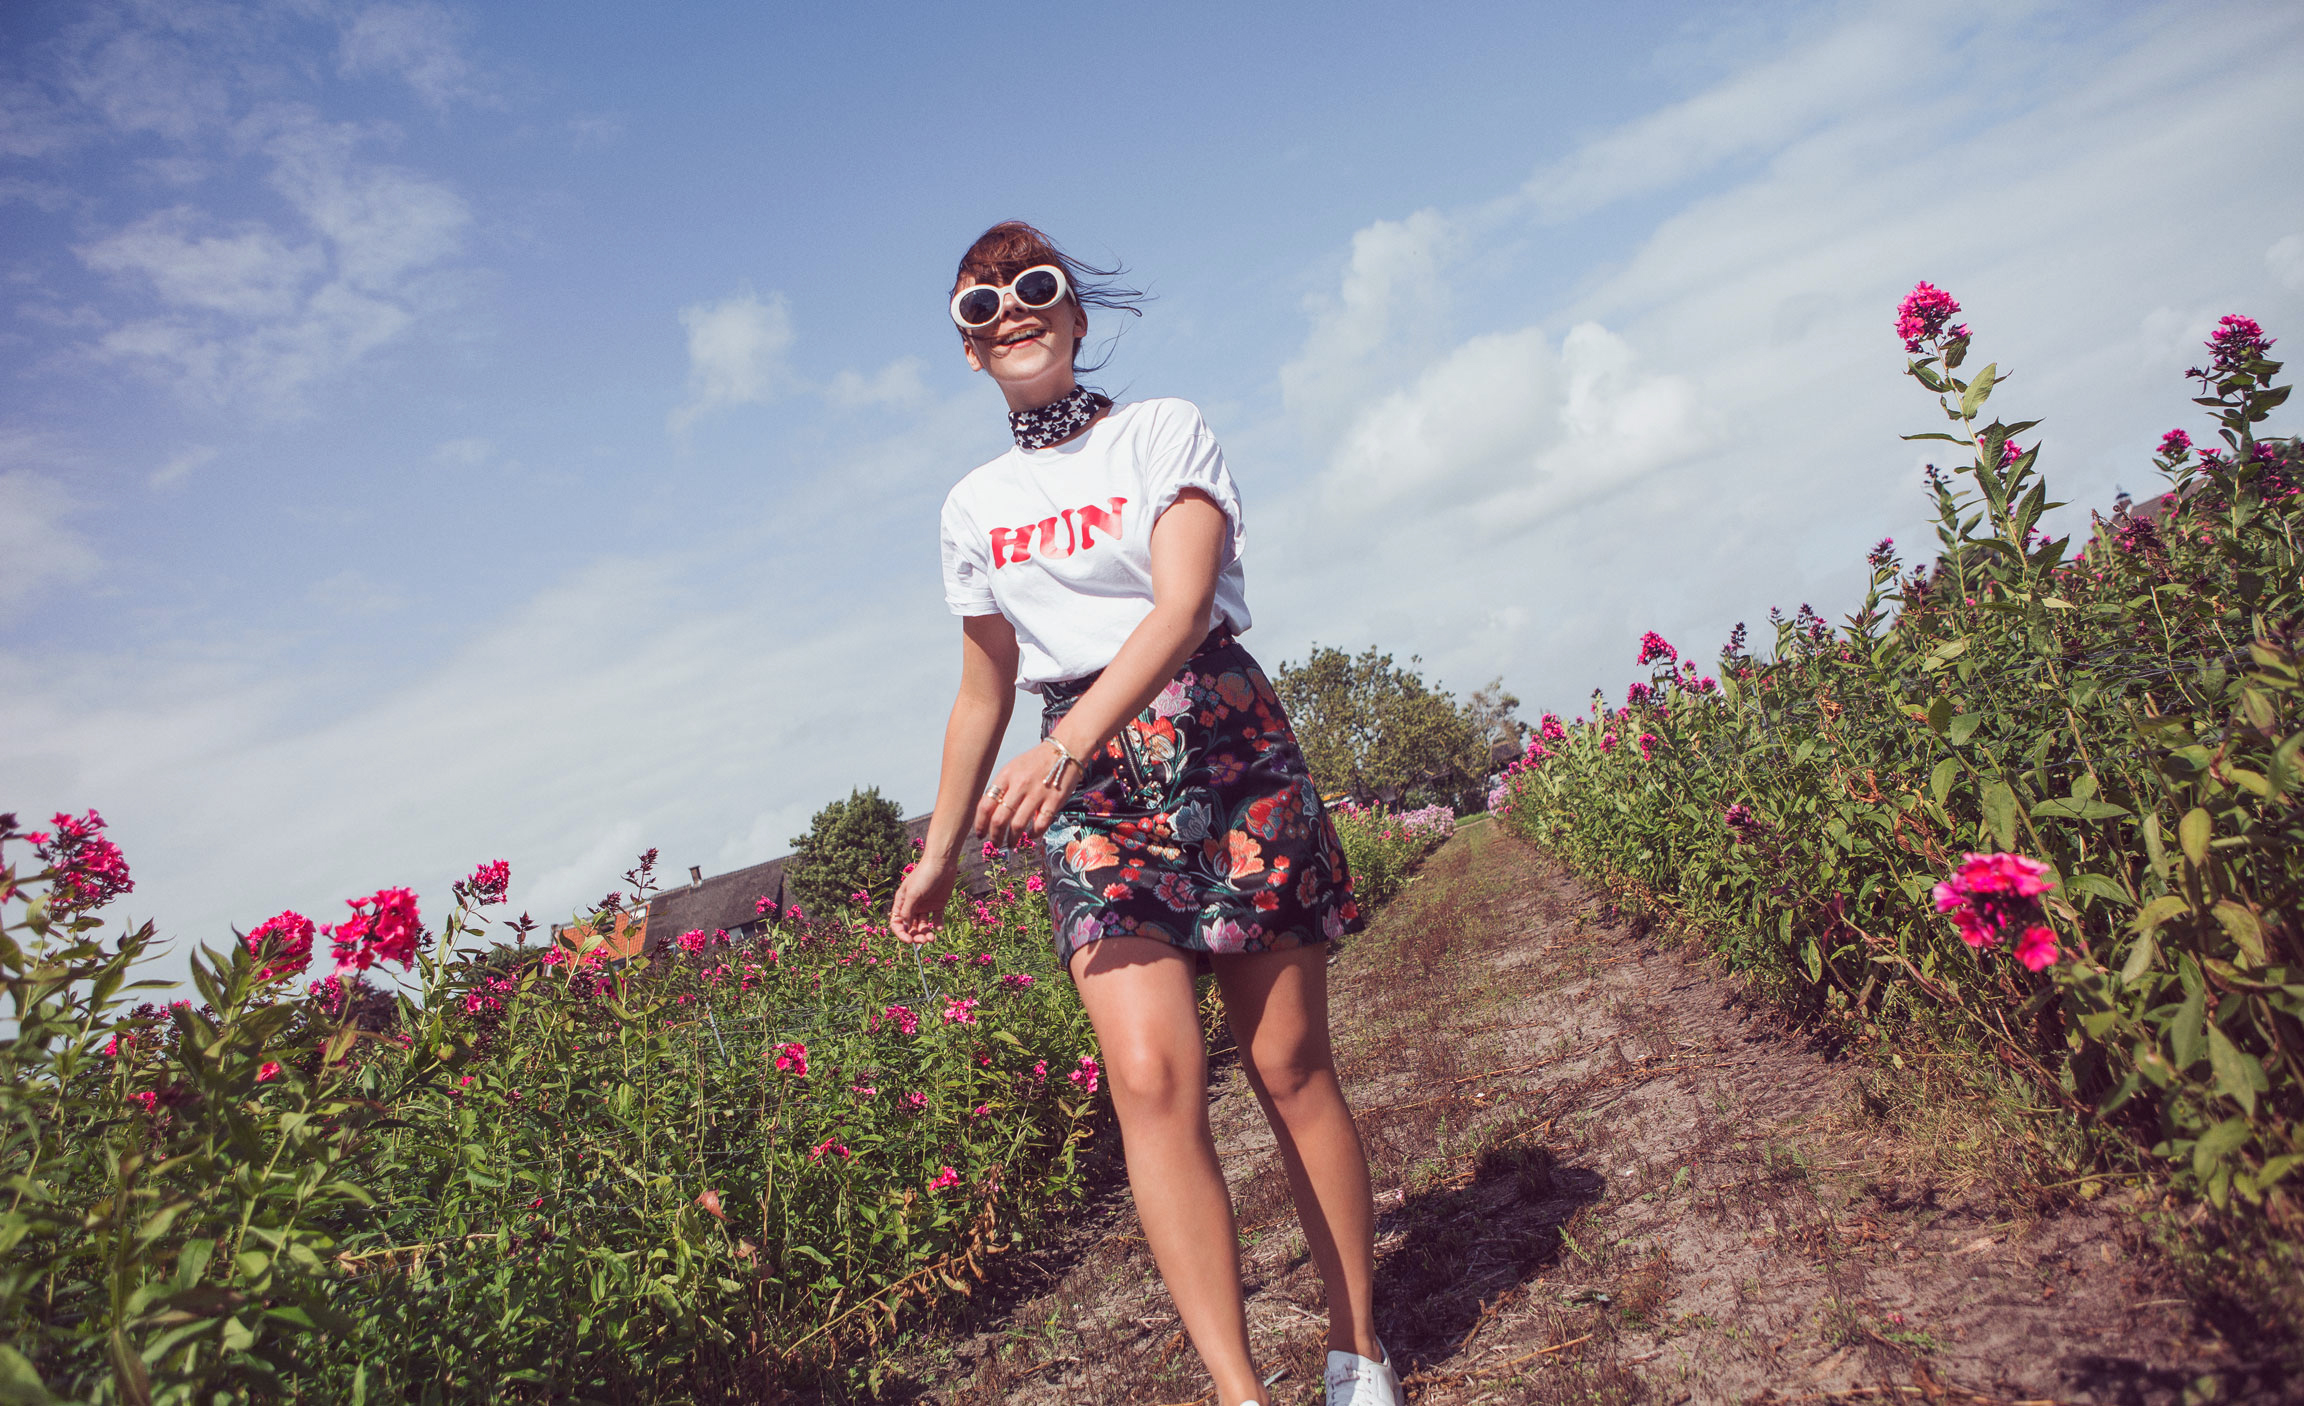 MEGAN ELLABY HOW TO WEAR TRAINERS